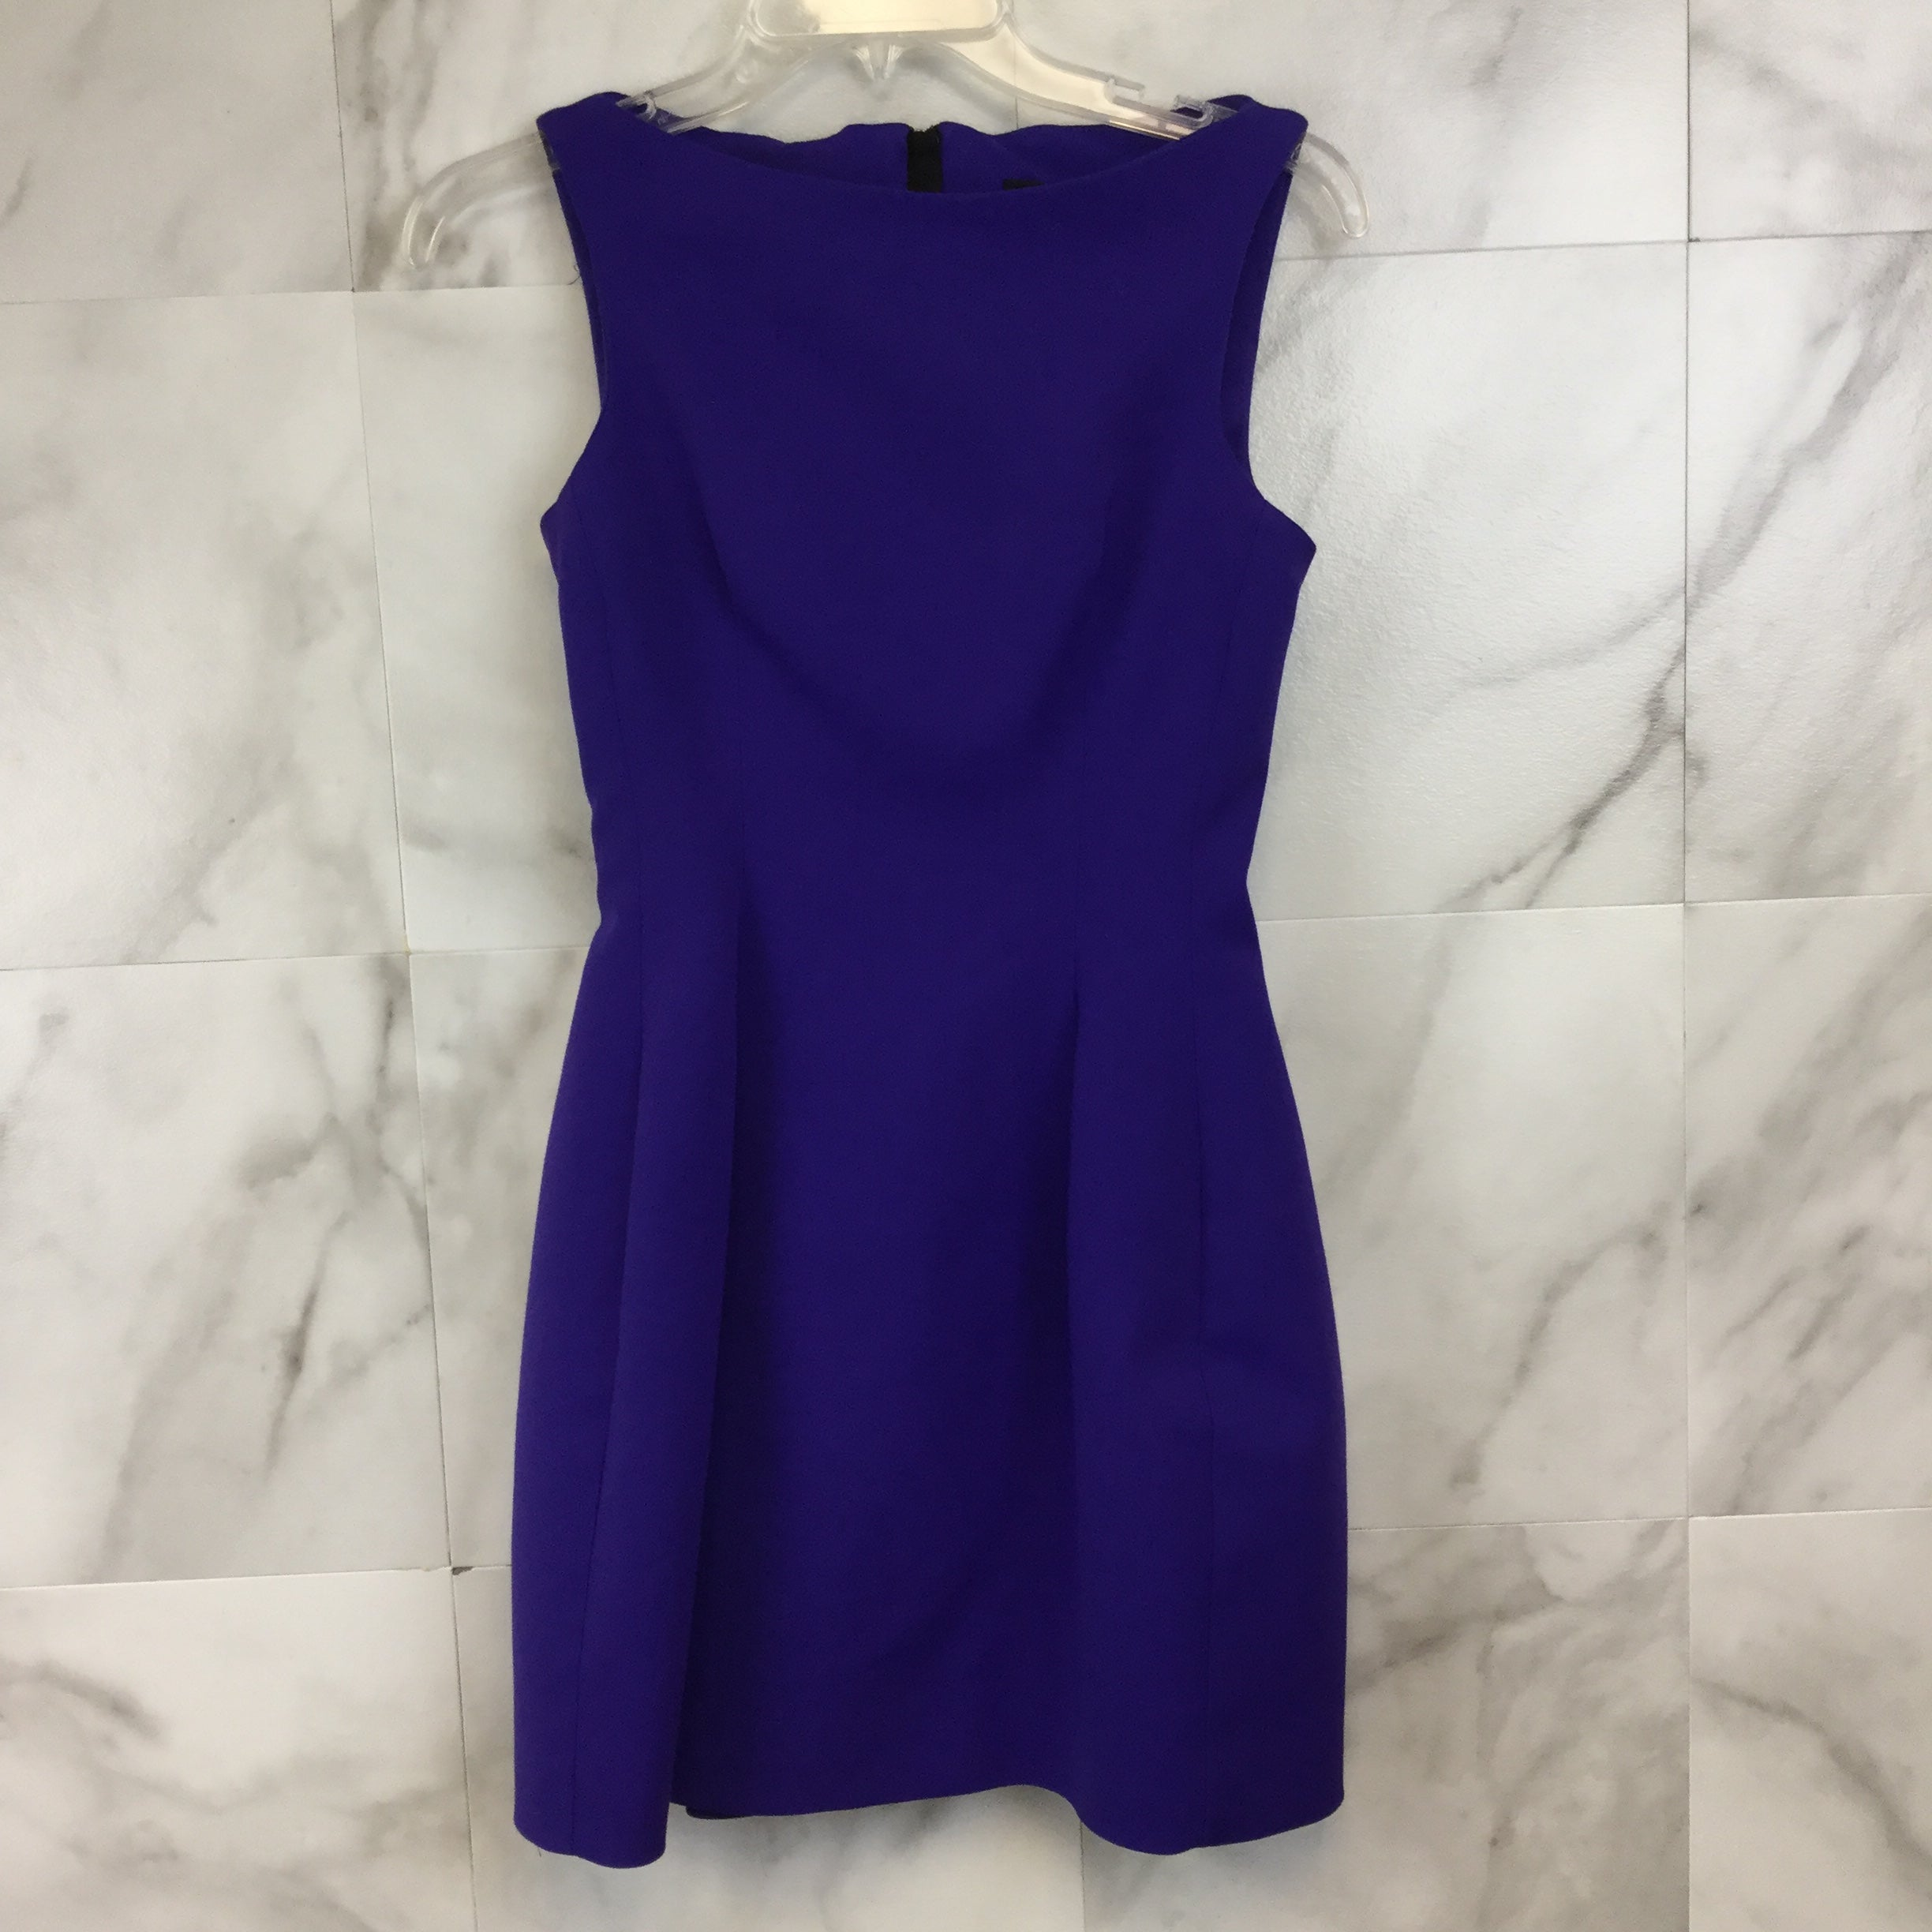 Zara Tulip Mini Dress - size XS